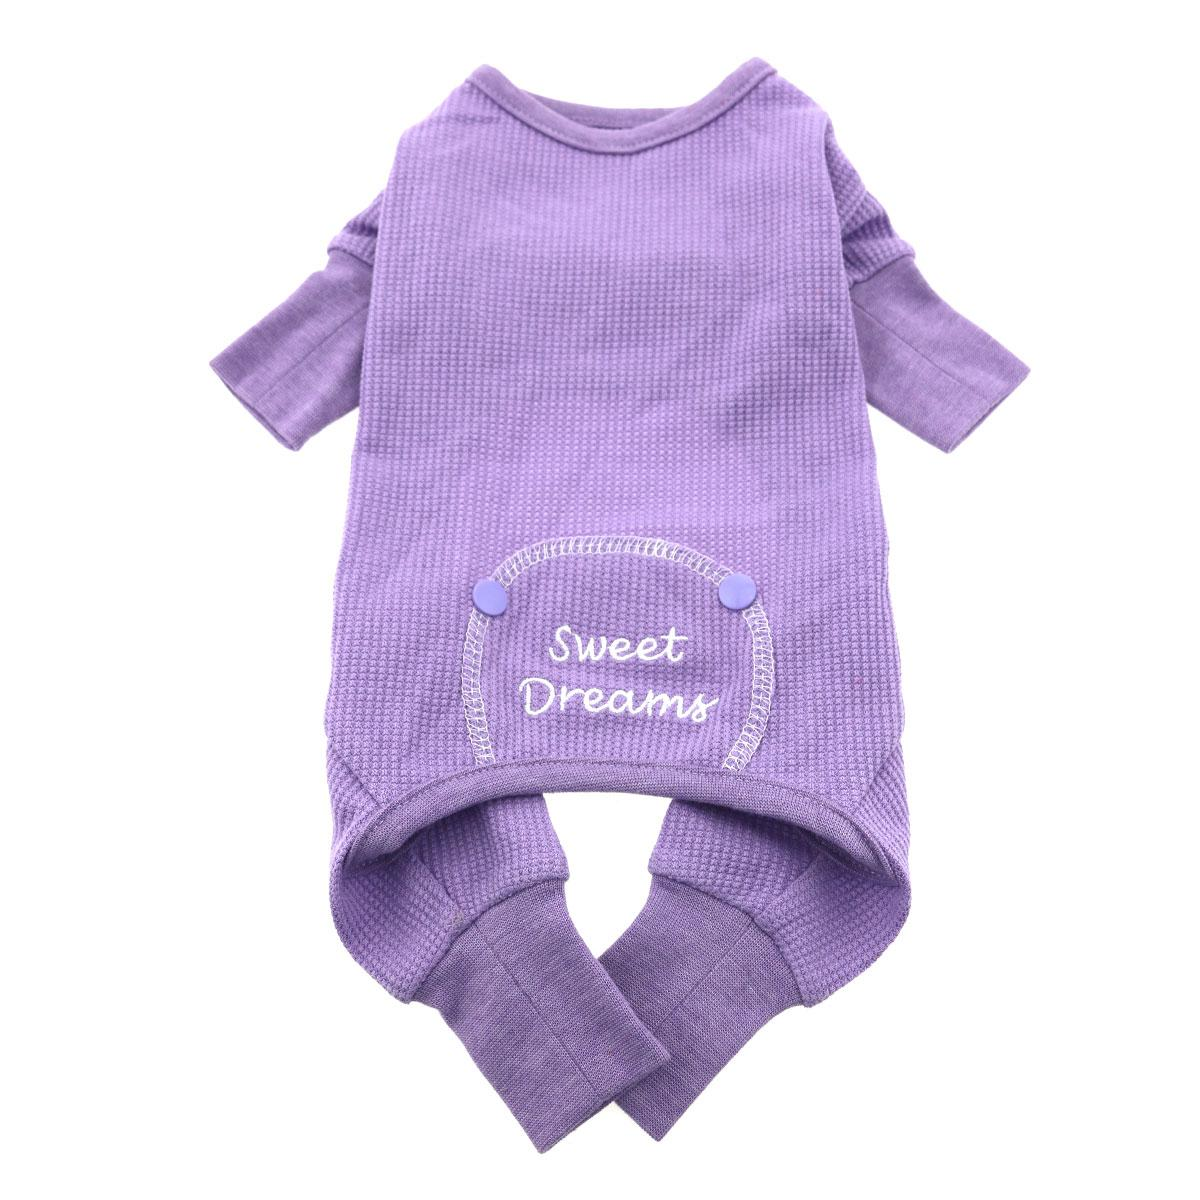 Doggie Design Thermal Pajamas for Dogs, Sweet Dreams, Lilac, X-Small